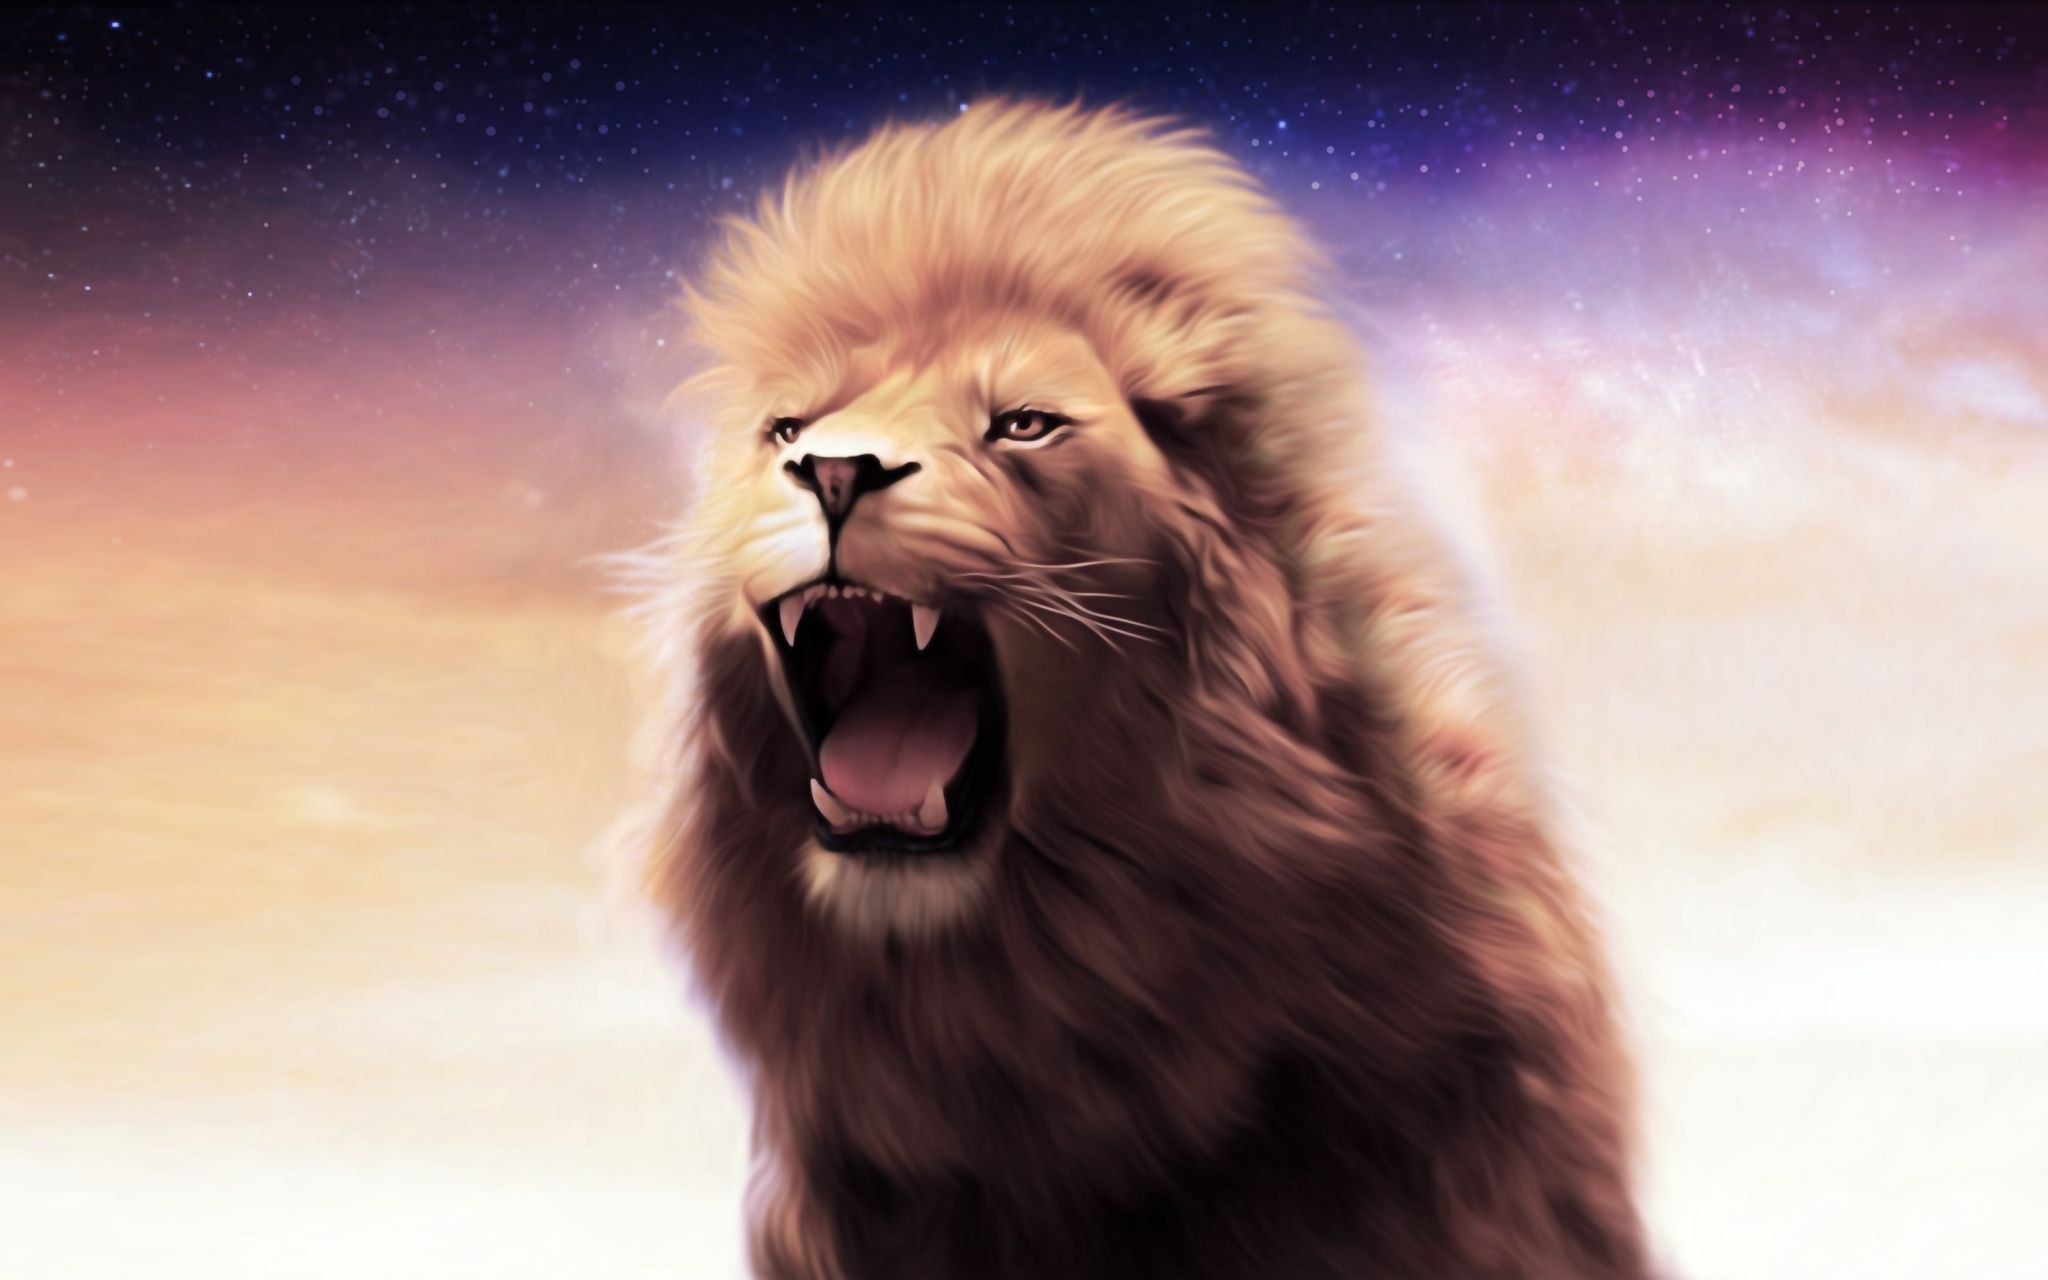 Cool Wallpaper Macbook Lion - 631d6c4d0bfffab7e77bc5080f9f6979  Perfect Image Reference_553675.jpg